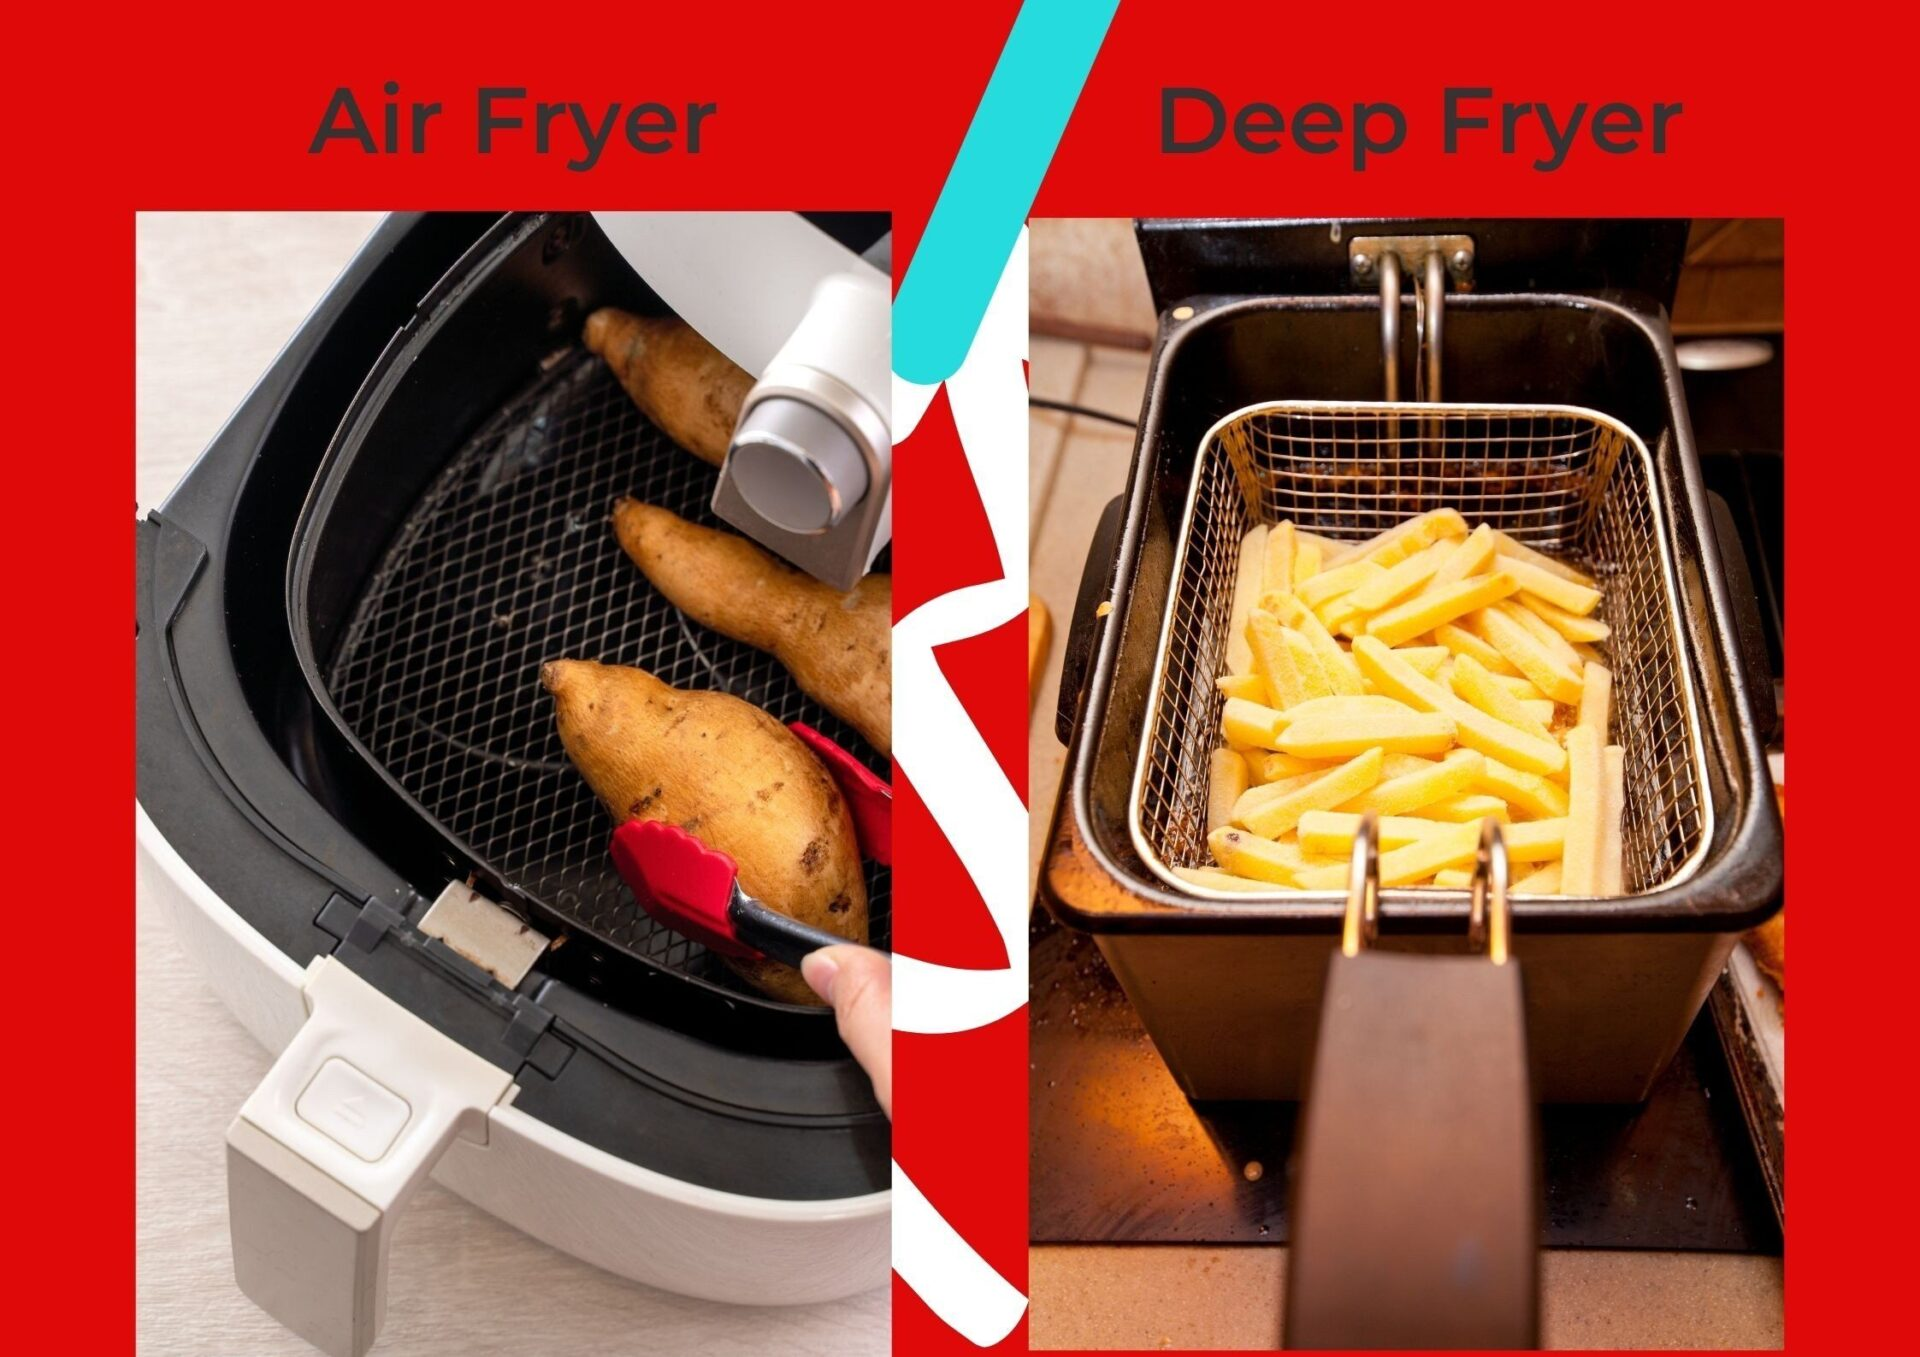 sa_1617953529_Air Fryer _ Deep Fryer